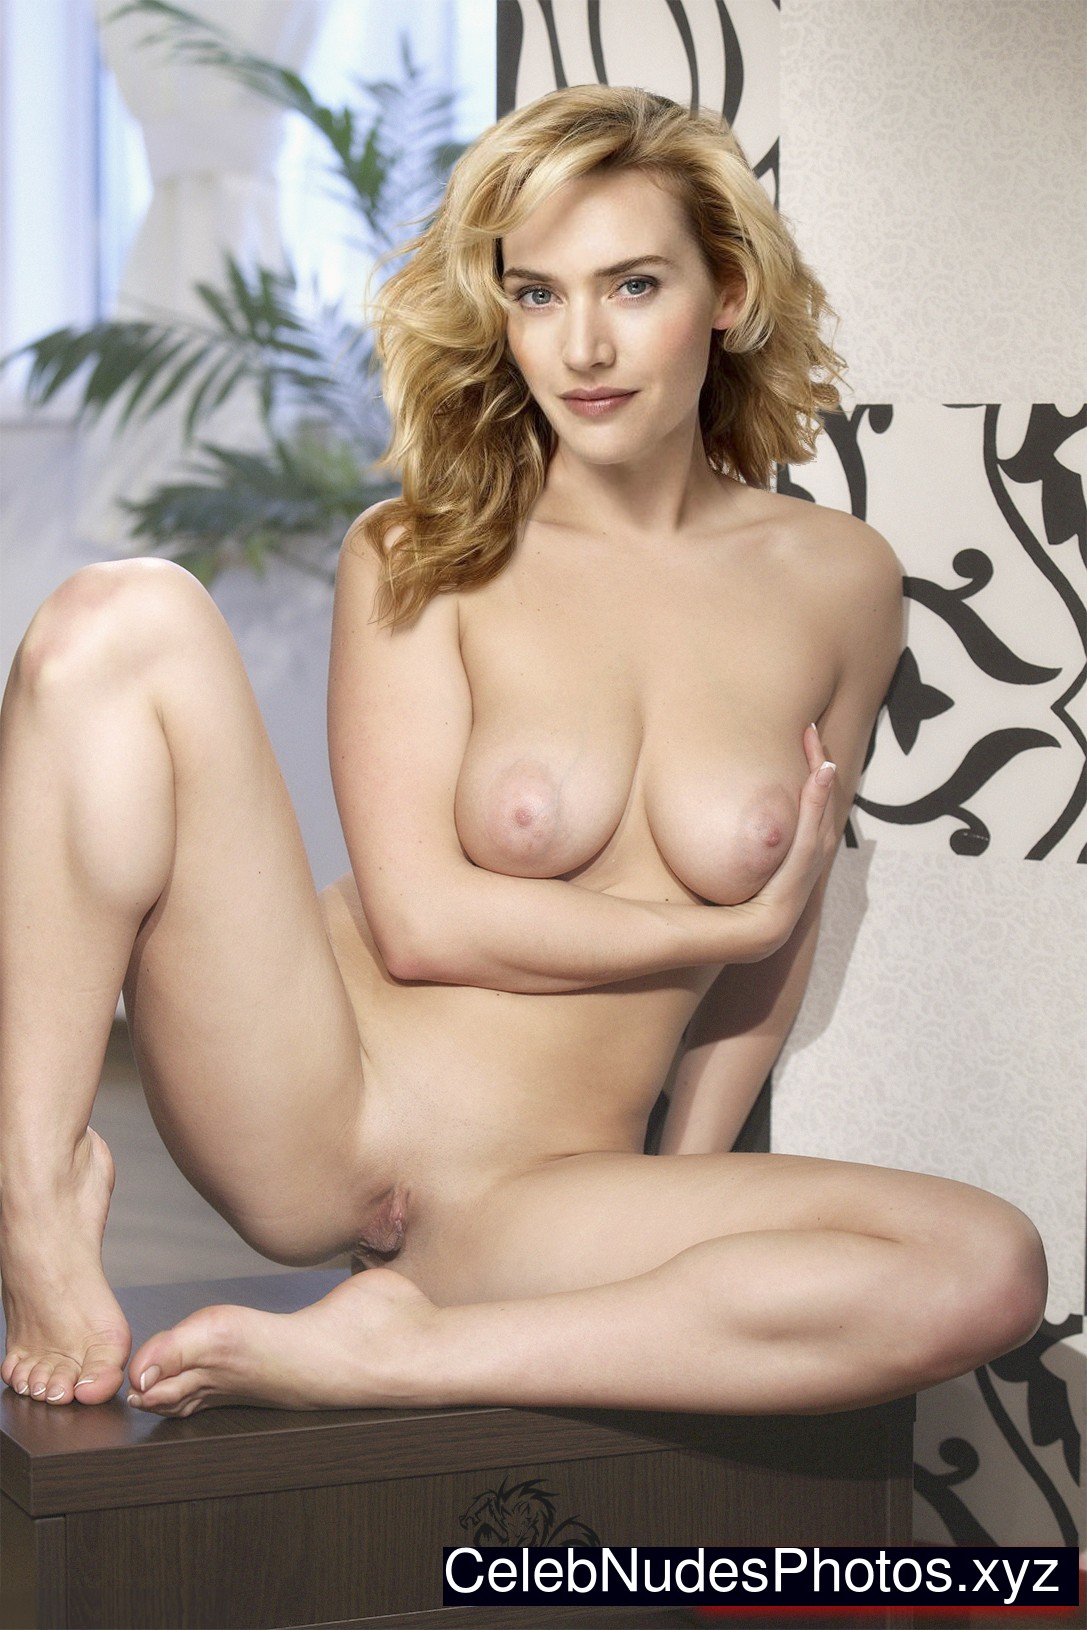 Kate winslets pussy